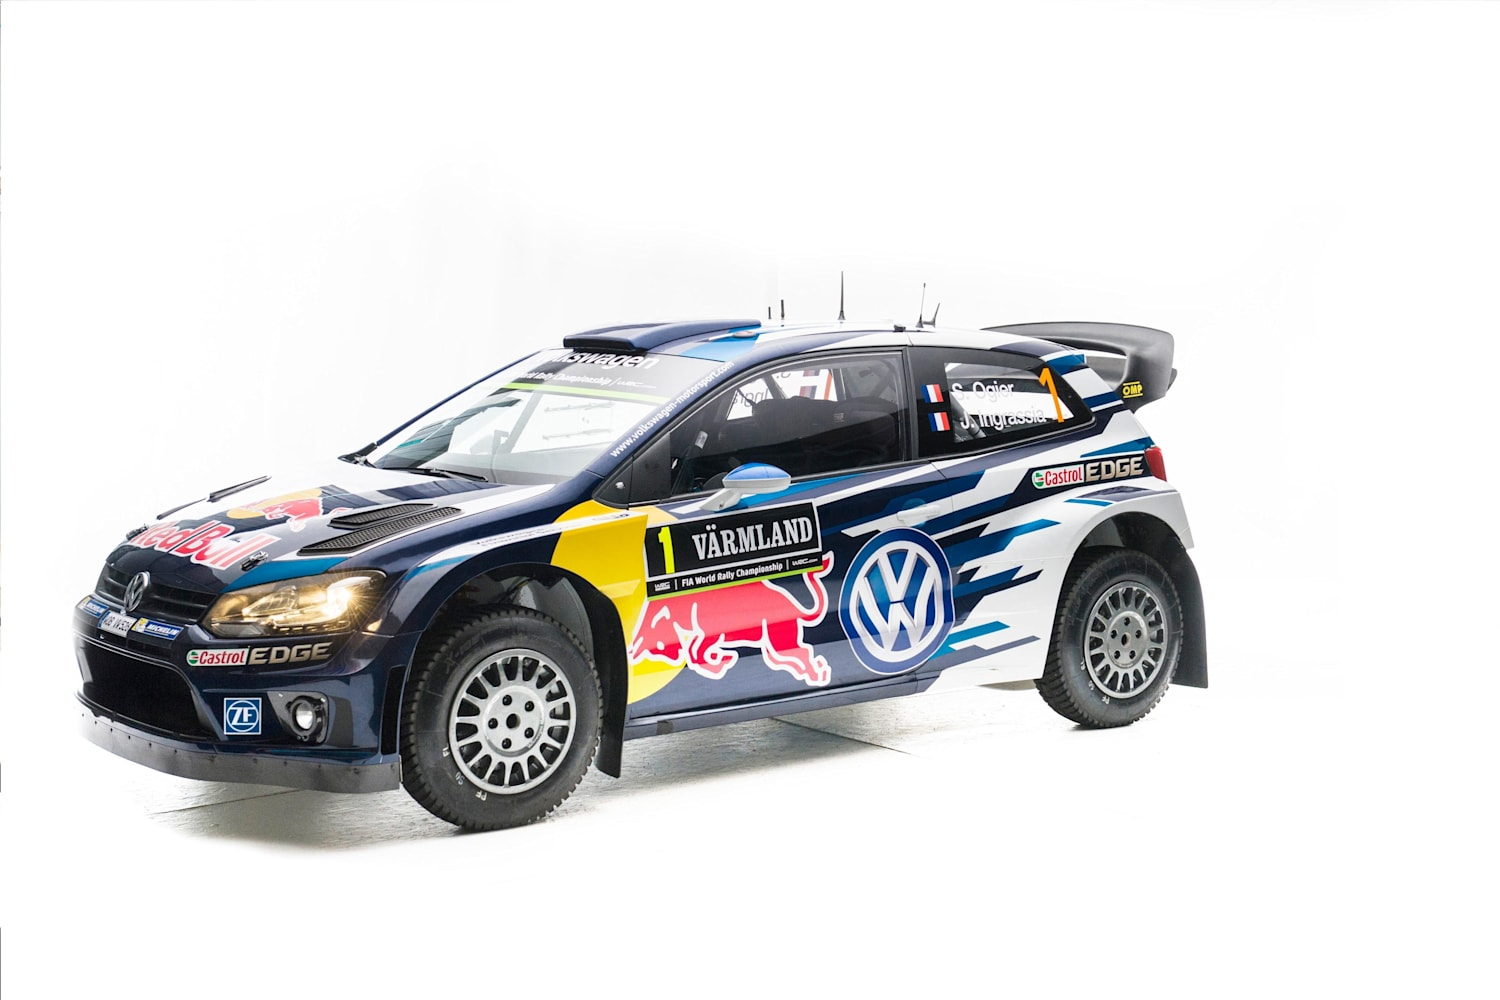 360 Degree View Of The Volkswagen Polo R Wrc